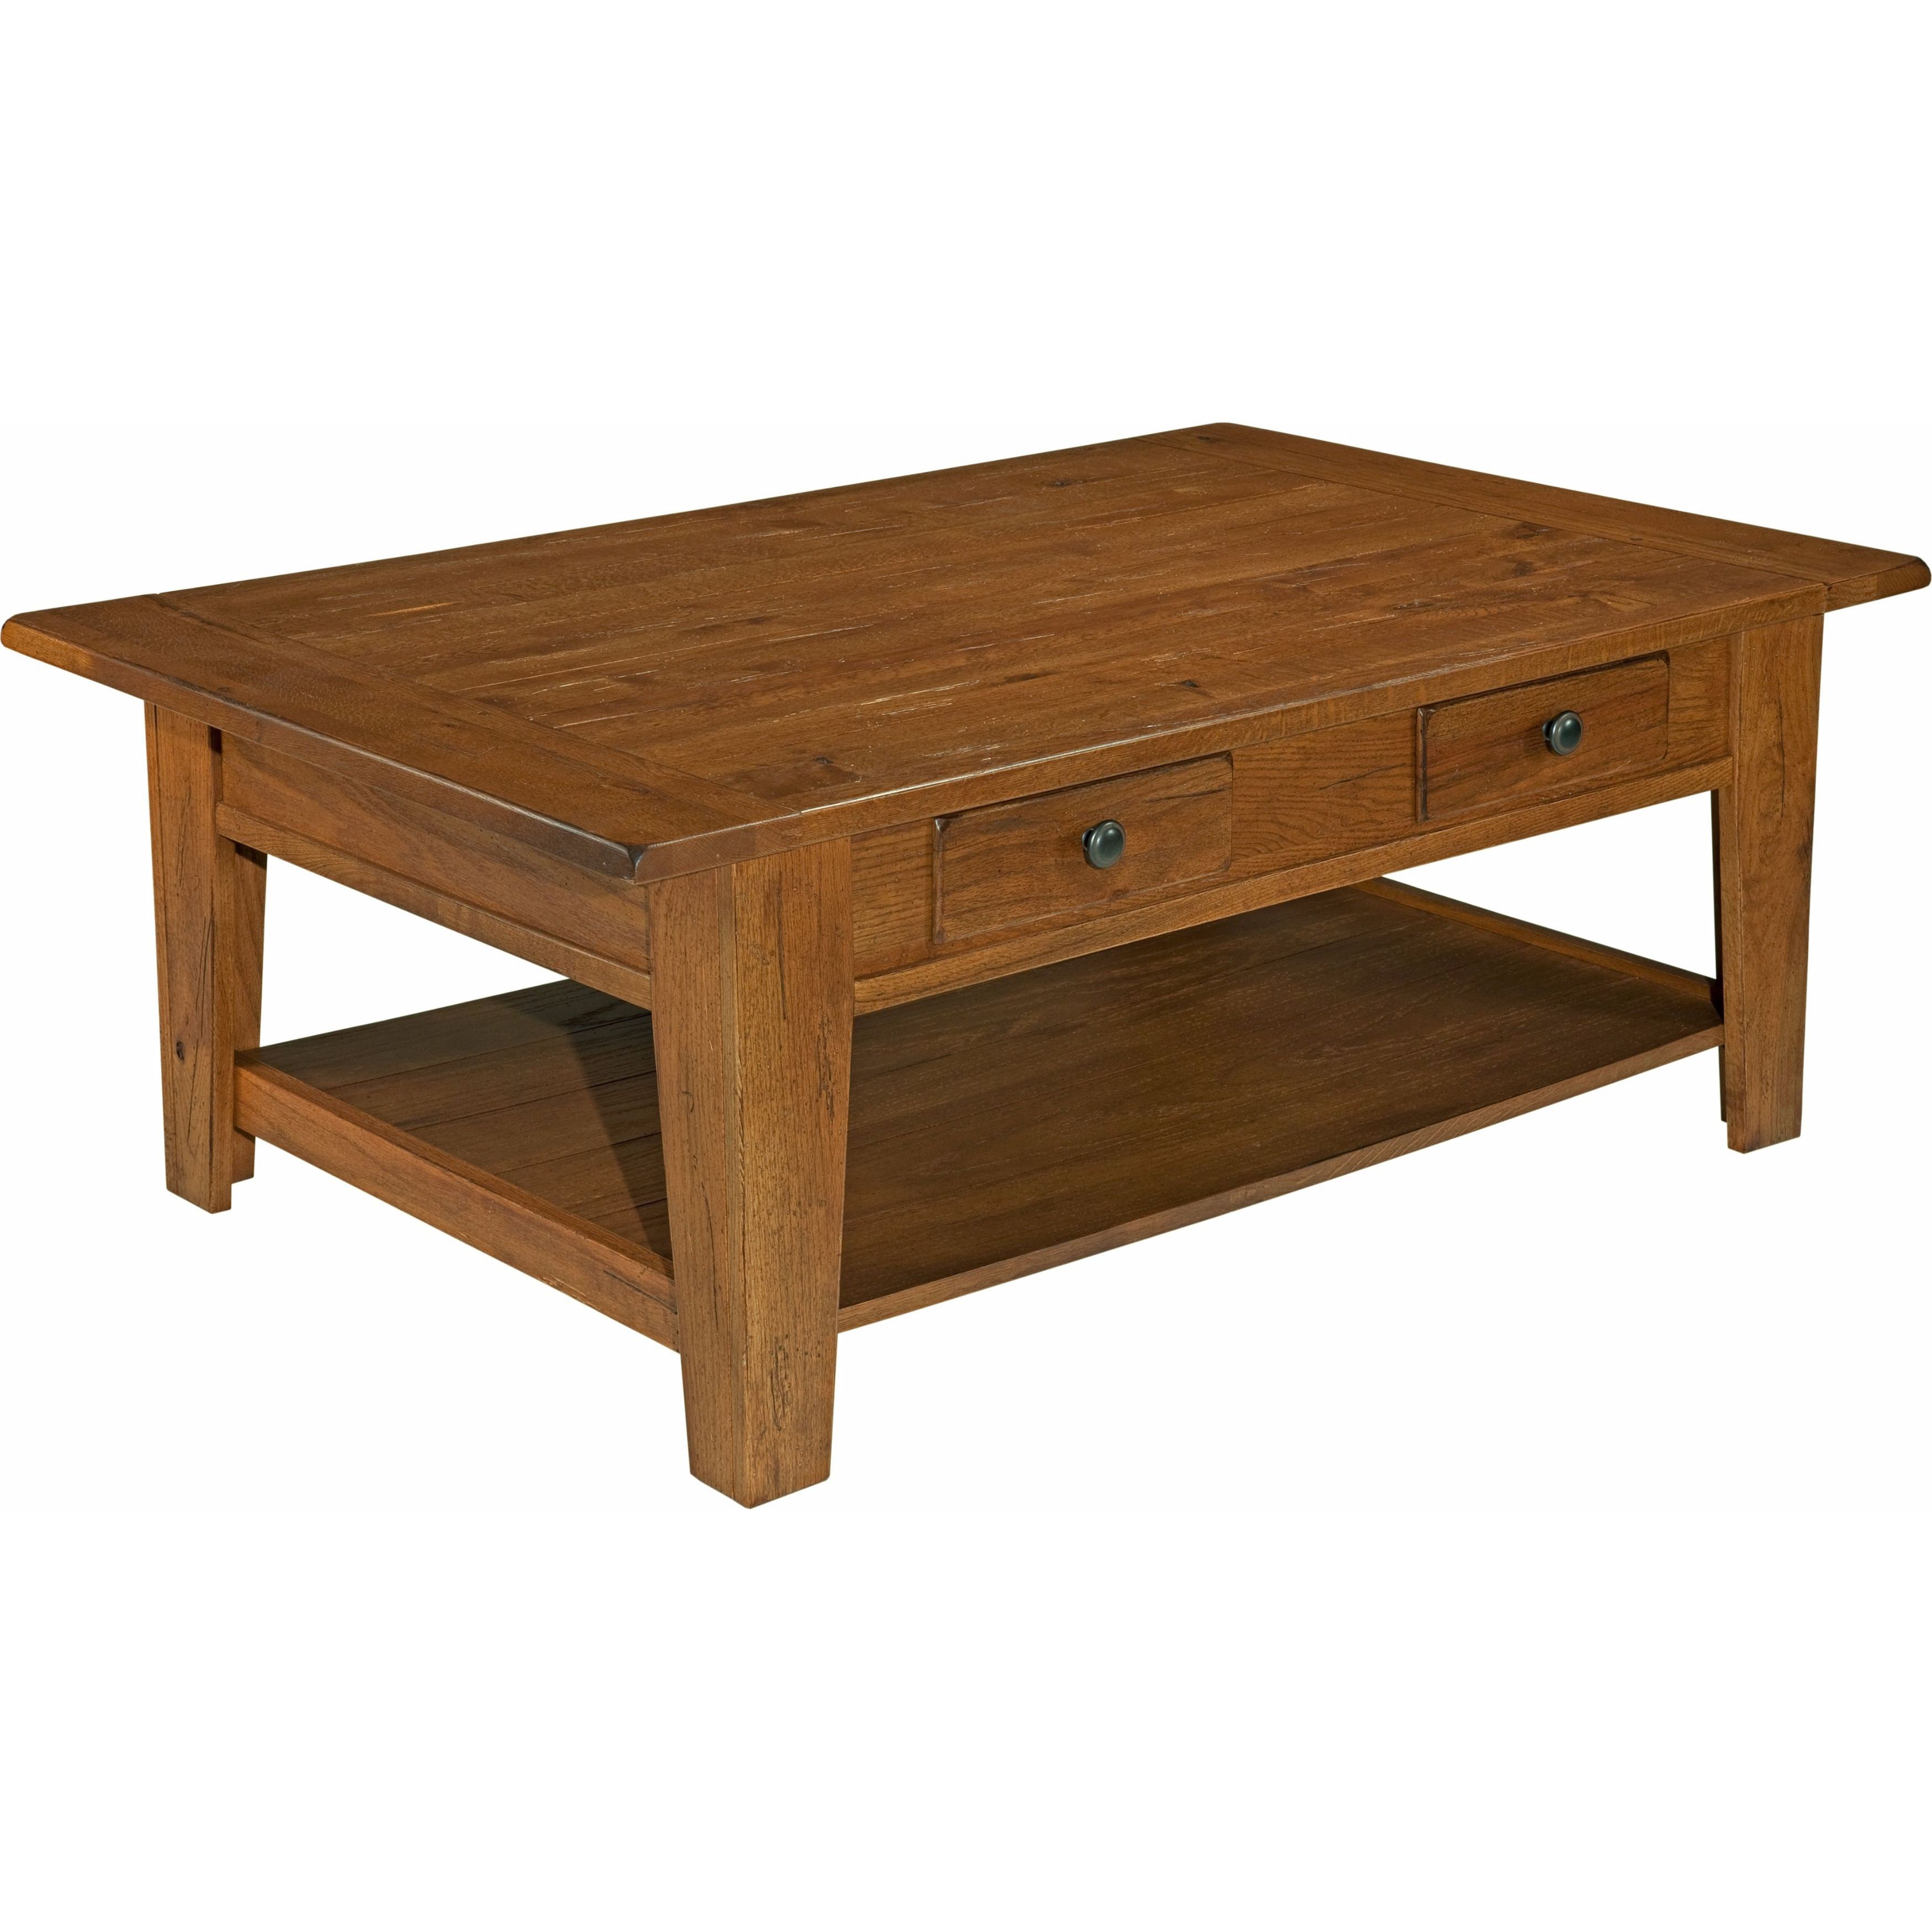 Shop Broyhill Attic Heirlooms Rectangular Cocktail Table - Free Shipping Today - Overstock.com - 12108895  sc 1 st  Overstock.com & Shop Broyhill Attic Heirlooms Rectangular Cocktail Table - Free ...